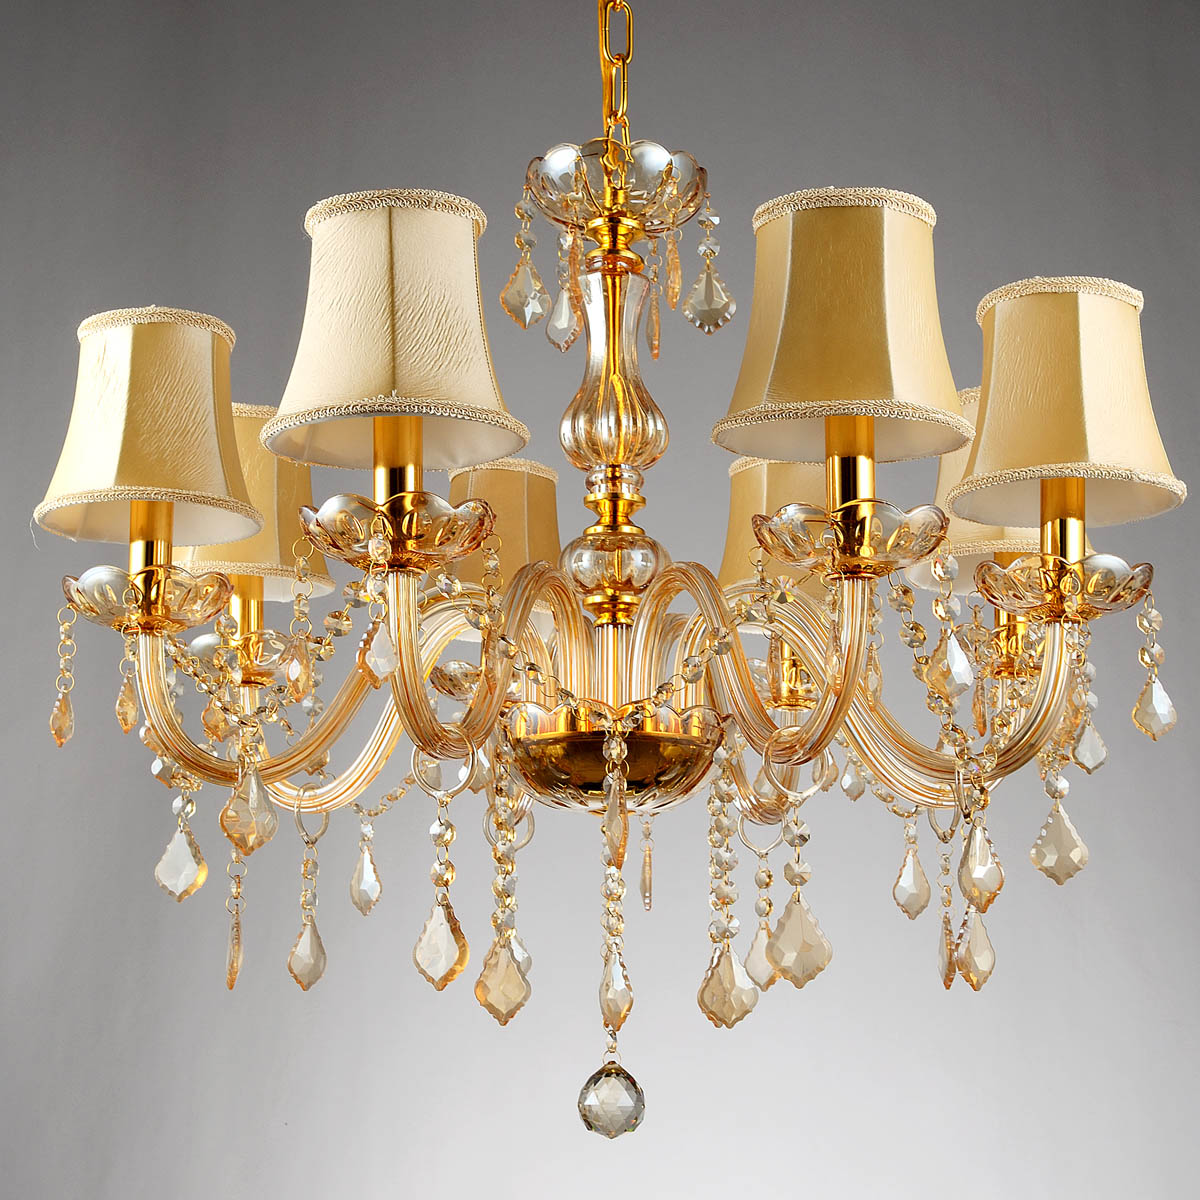 Free ship 6/8 Arms Fashion crystal Chandelier lighting Bedroom pendant Chandelier champagne color gold crystal lighting lamps(China (Mainland))